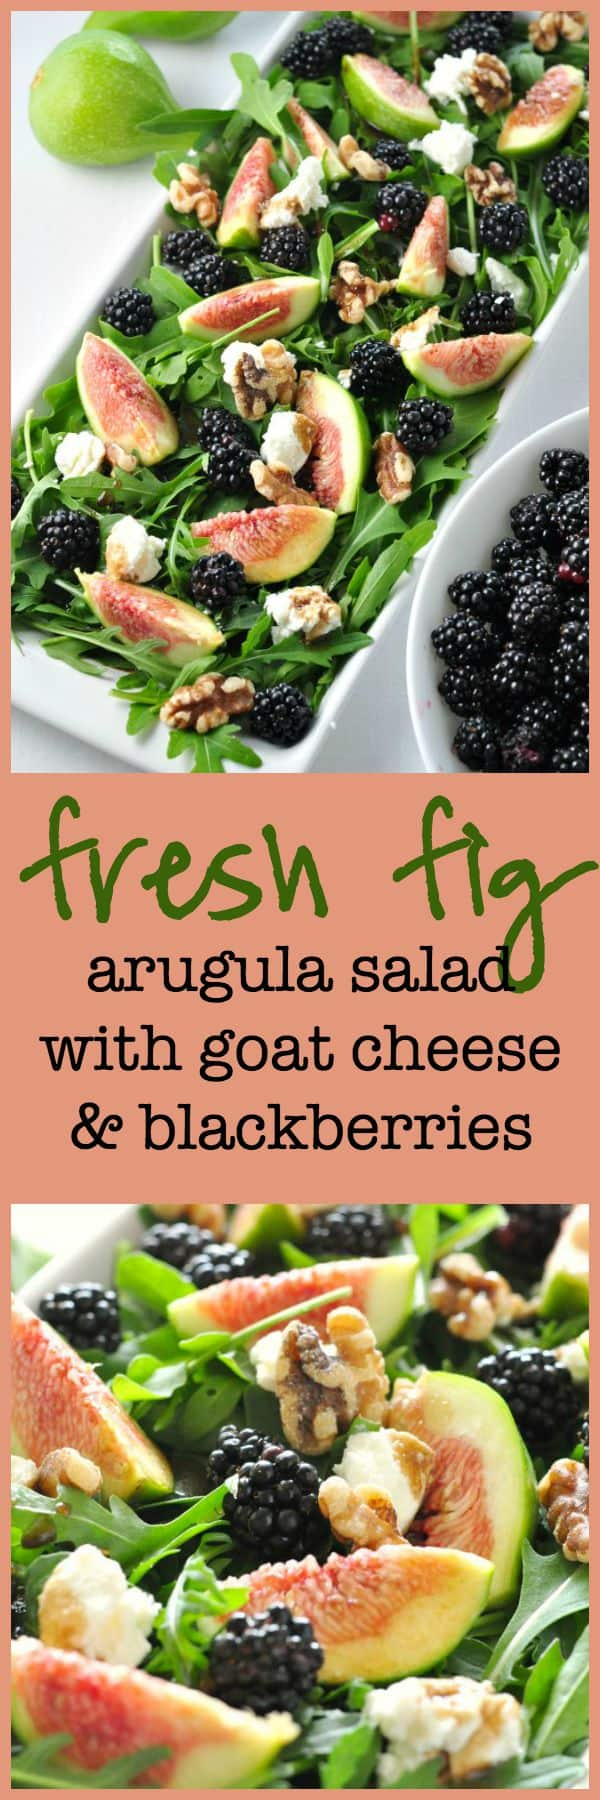 Savour the flavours of the season with this fresh fig arugula salad with blackberries, goat cheese and walnuts.